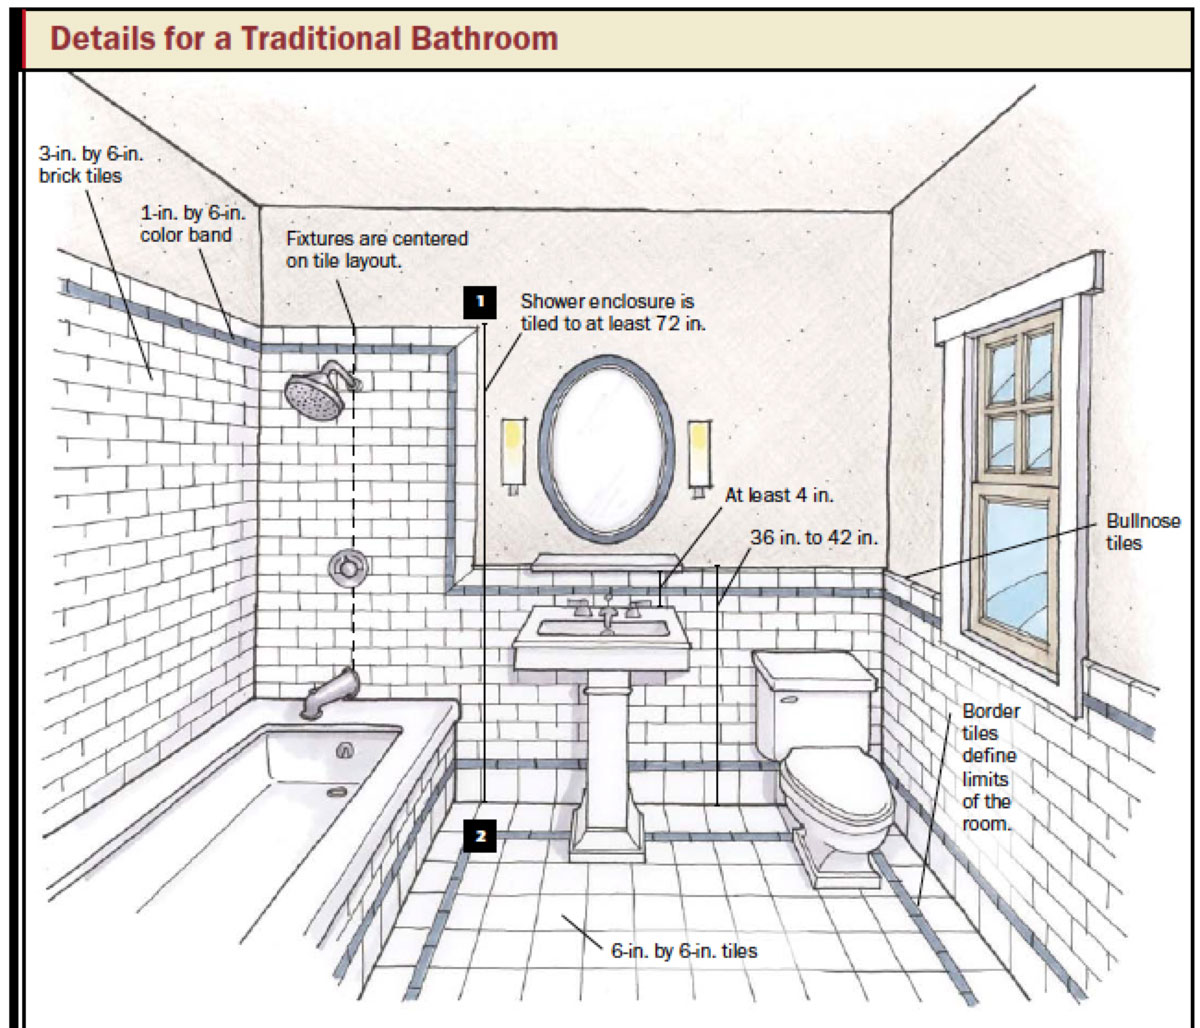 Bathroom design planning tips taymor Bathroom wall tiles laying designs